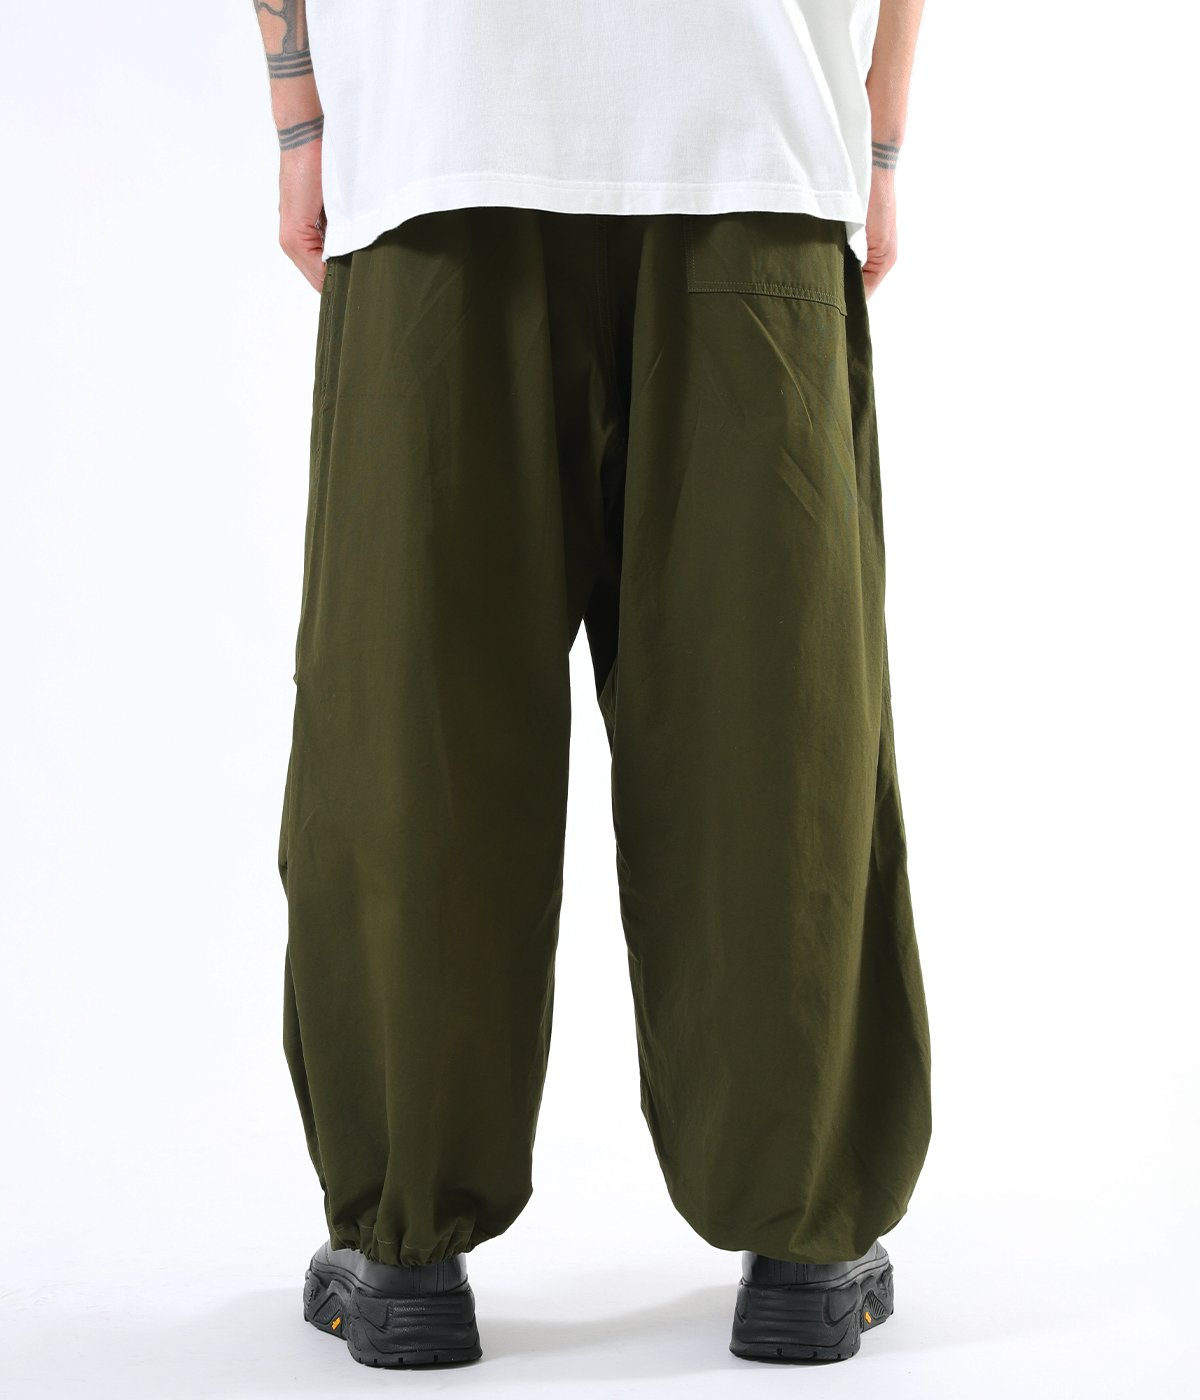 COTTON WEATHER OVER PANTS